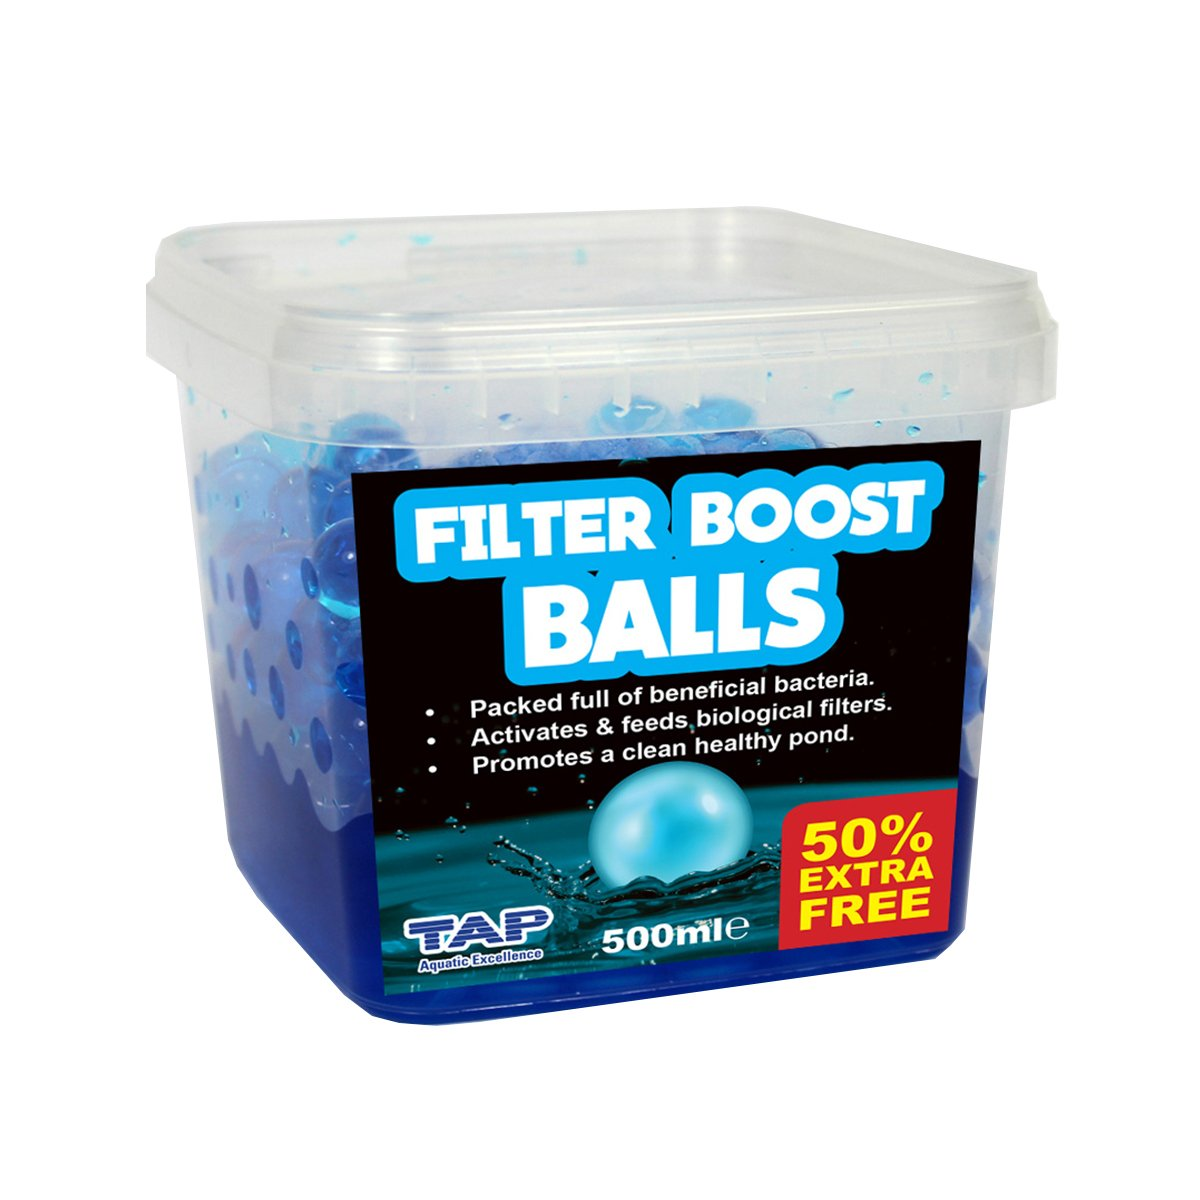 TAP Pond Filter Boost Balls 500ml + 50% Extra Free